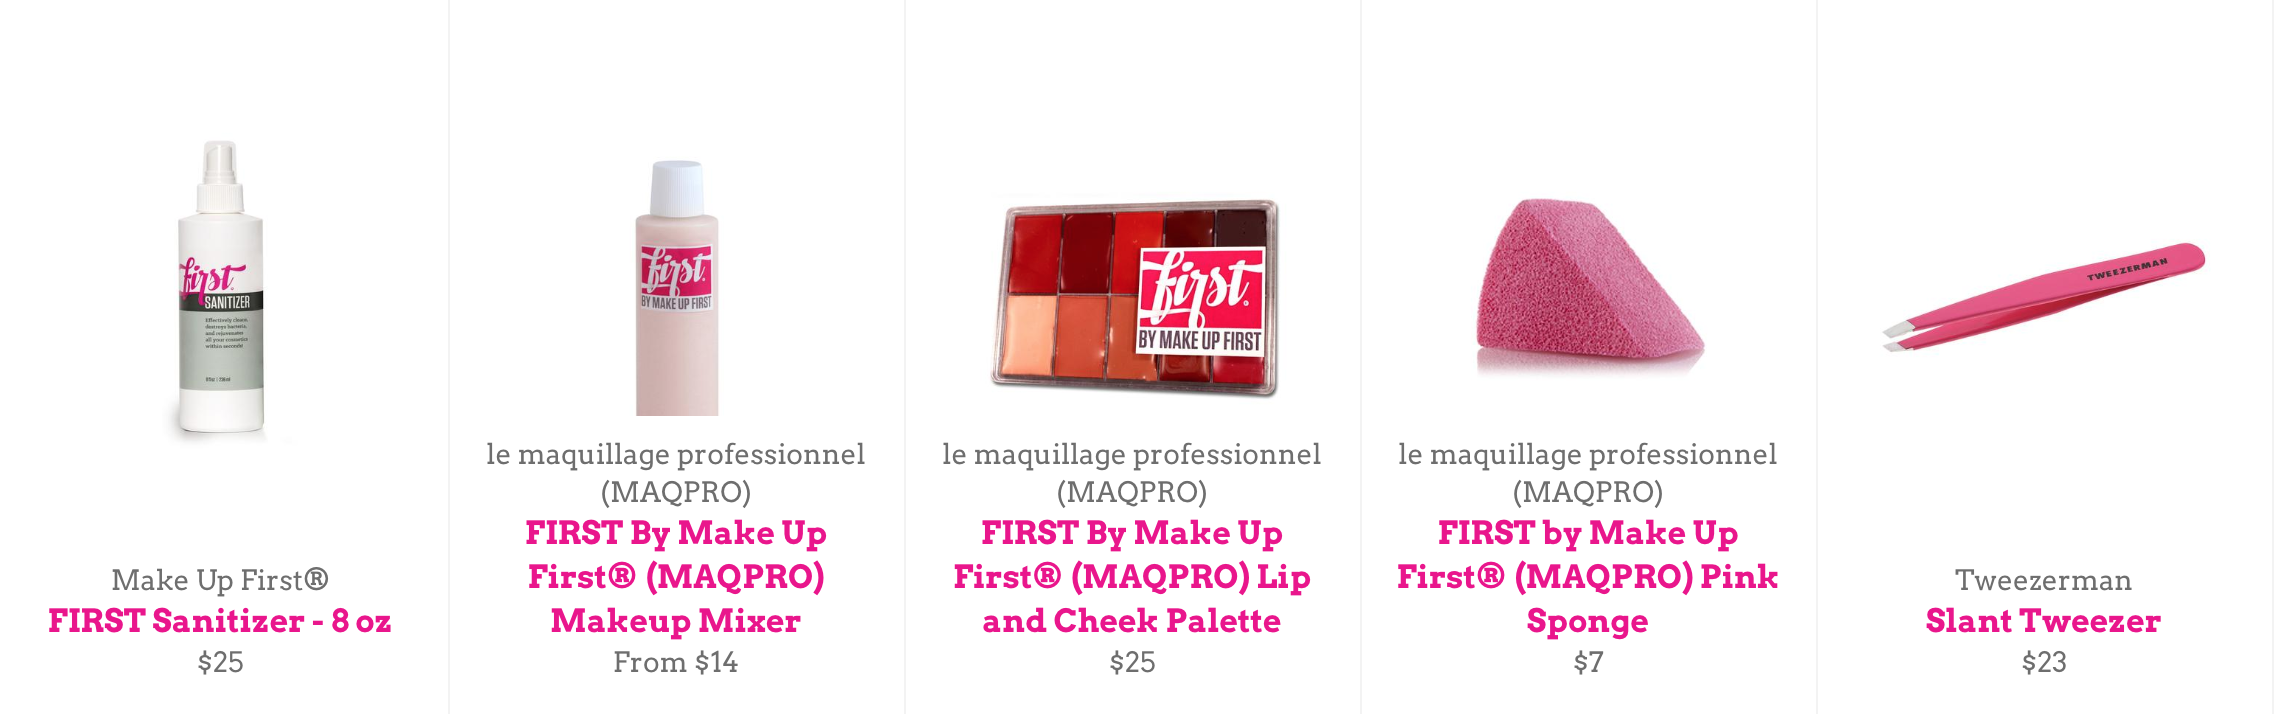 Make Up First Pink Picks 3